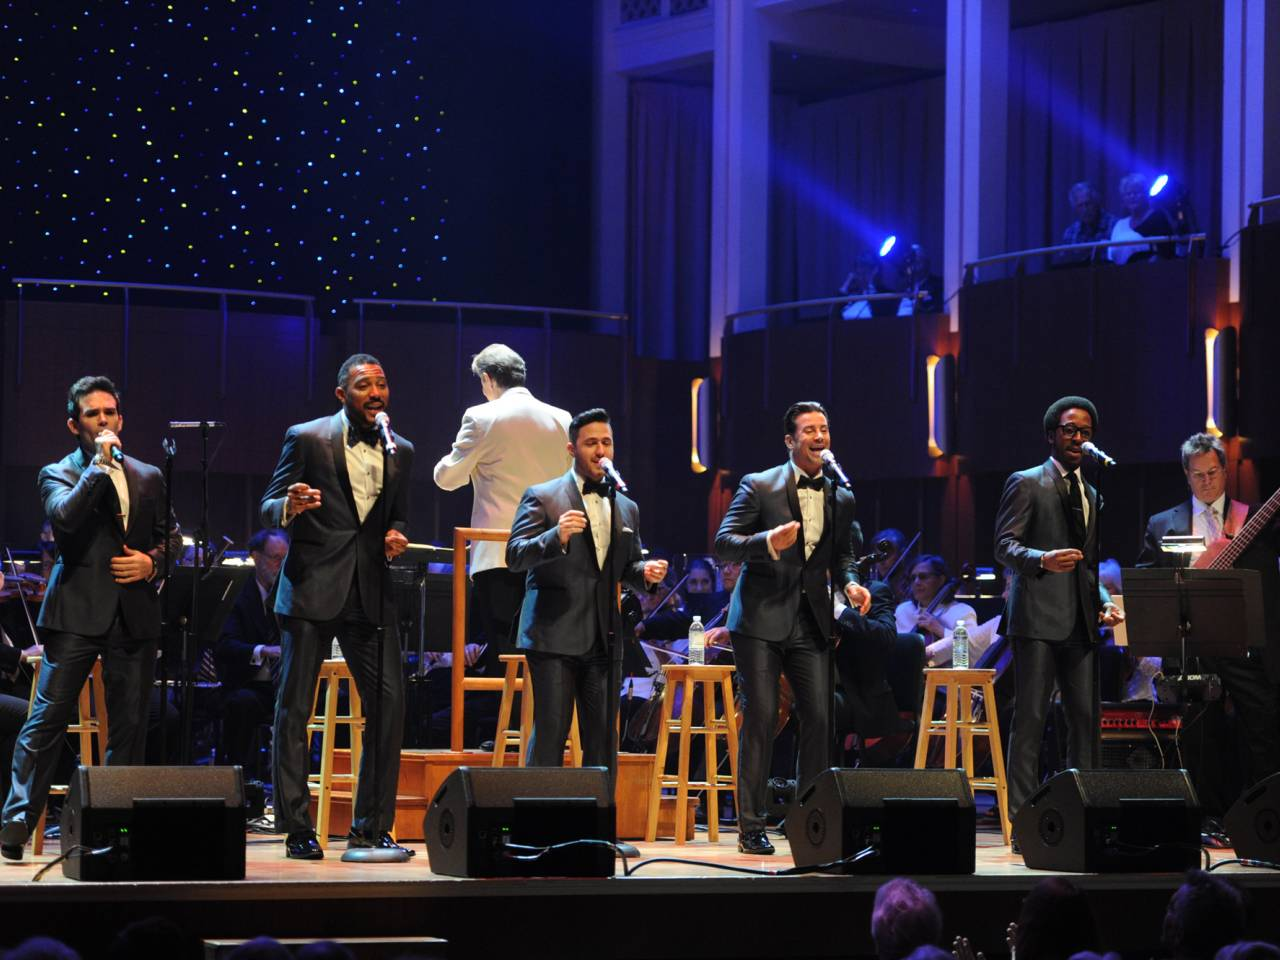 The Doo Wop Project at The Grand